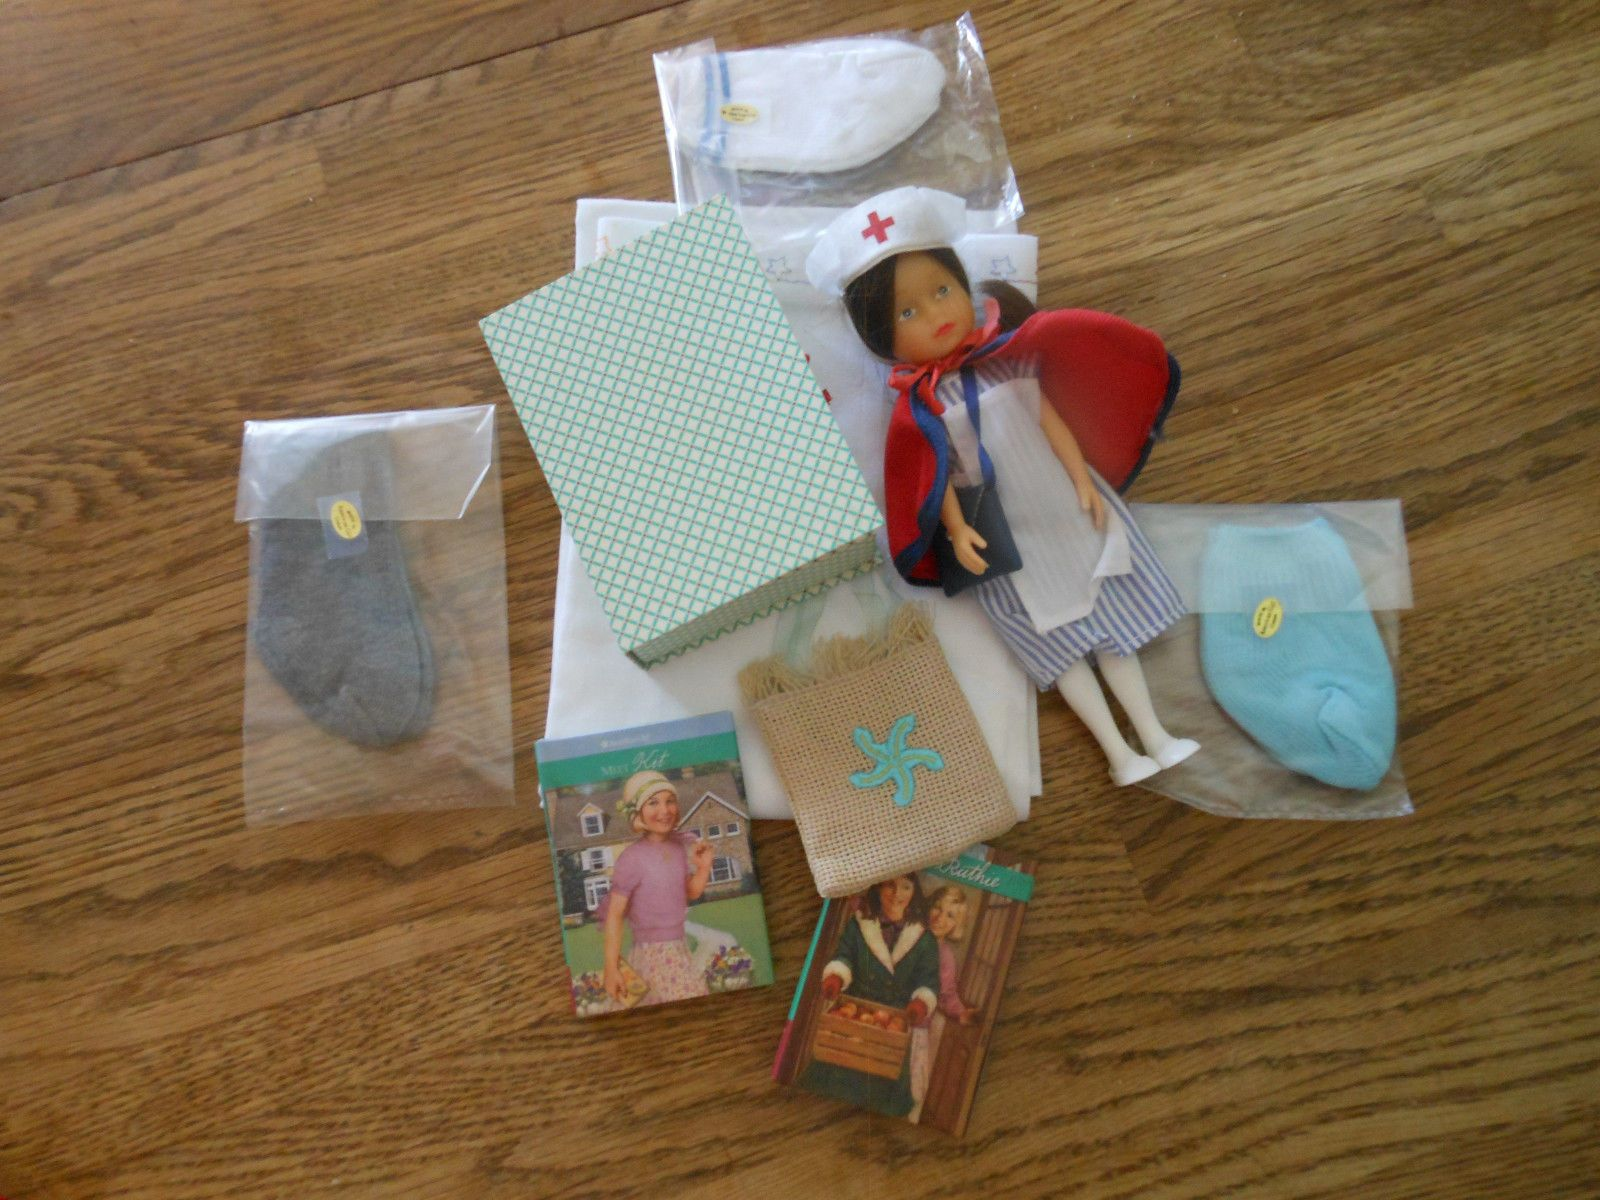 American Girl Doll - Lot of accessories https://t.co/DYCAYjbx66 https://t.co/0uHp1rOKAo